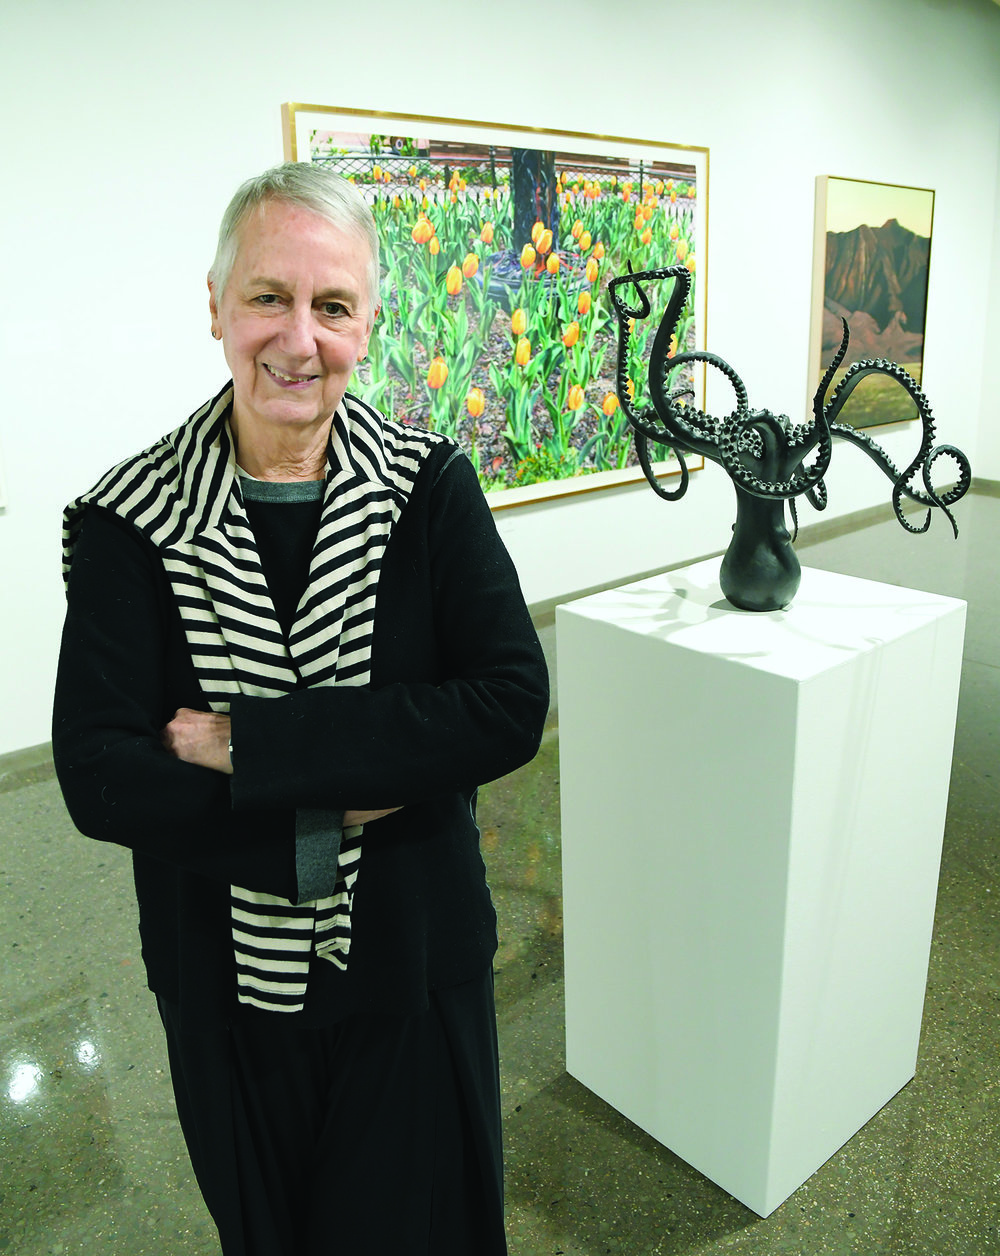 Sique Spence, director of Nancy Hoffman Gallery, visits Kauffman for the exhibit opening.